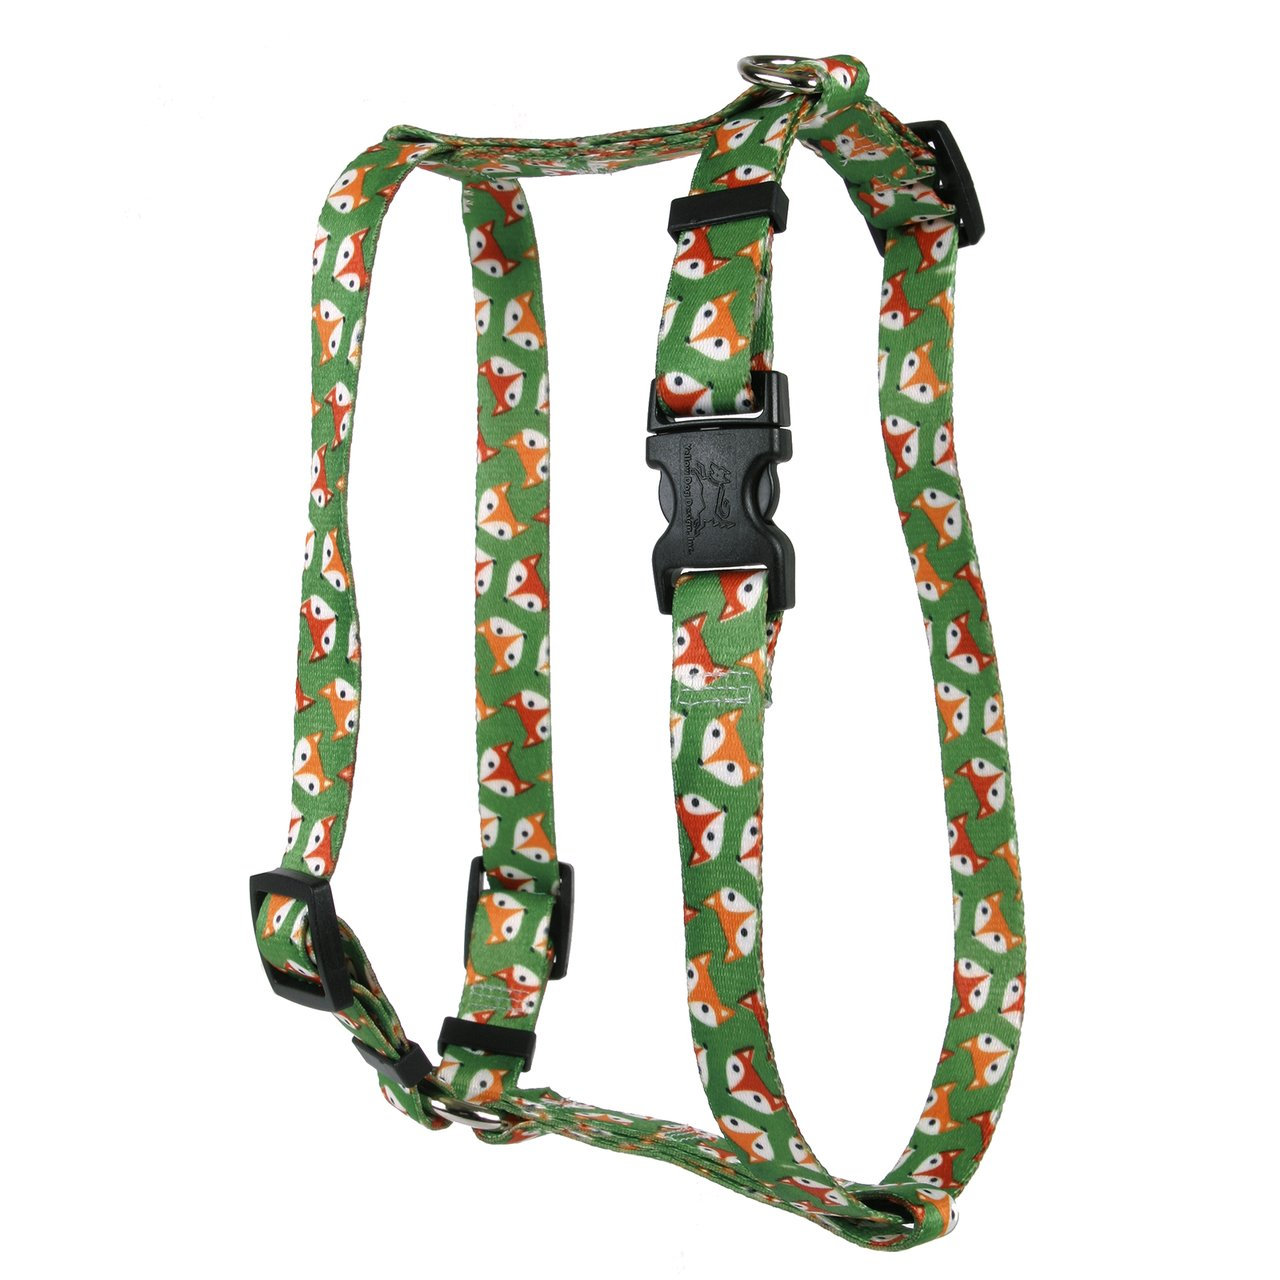 Yellow Dog Design Foxy Roman Style H Dog Harness 1'' Wide and Fits Chest Circumference of 20 to 28'', Large